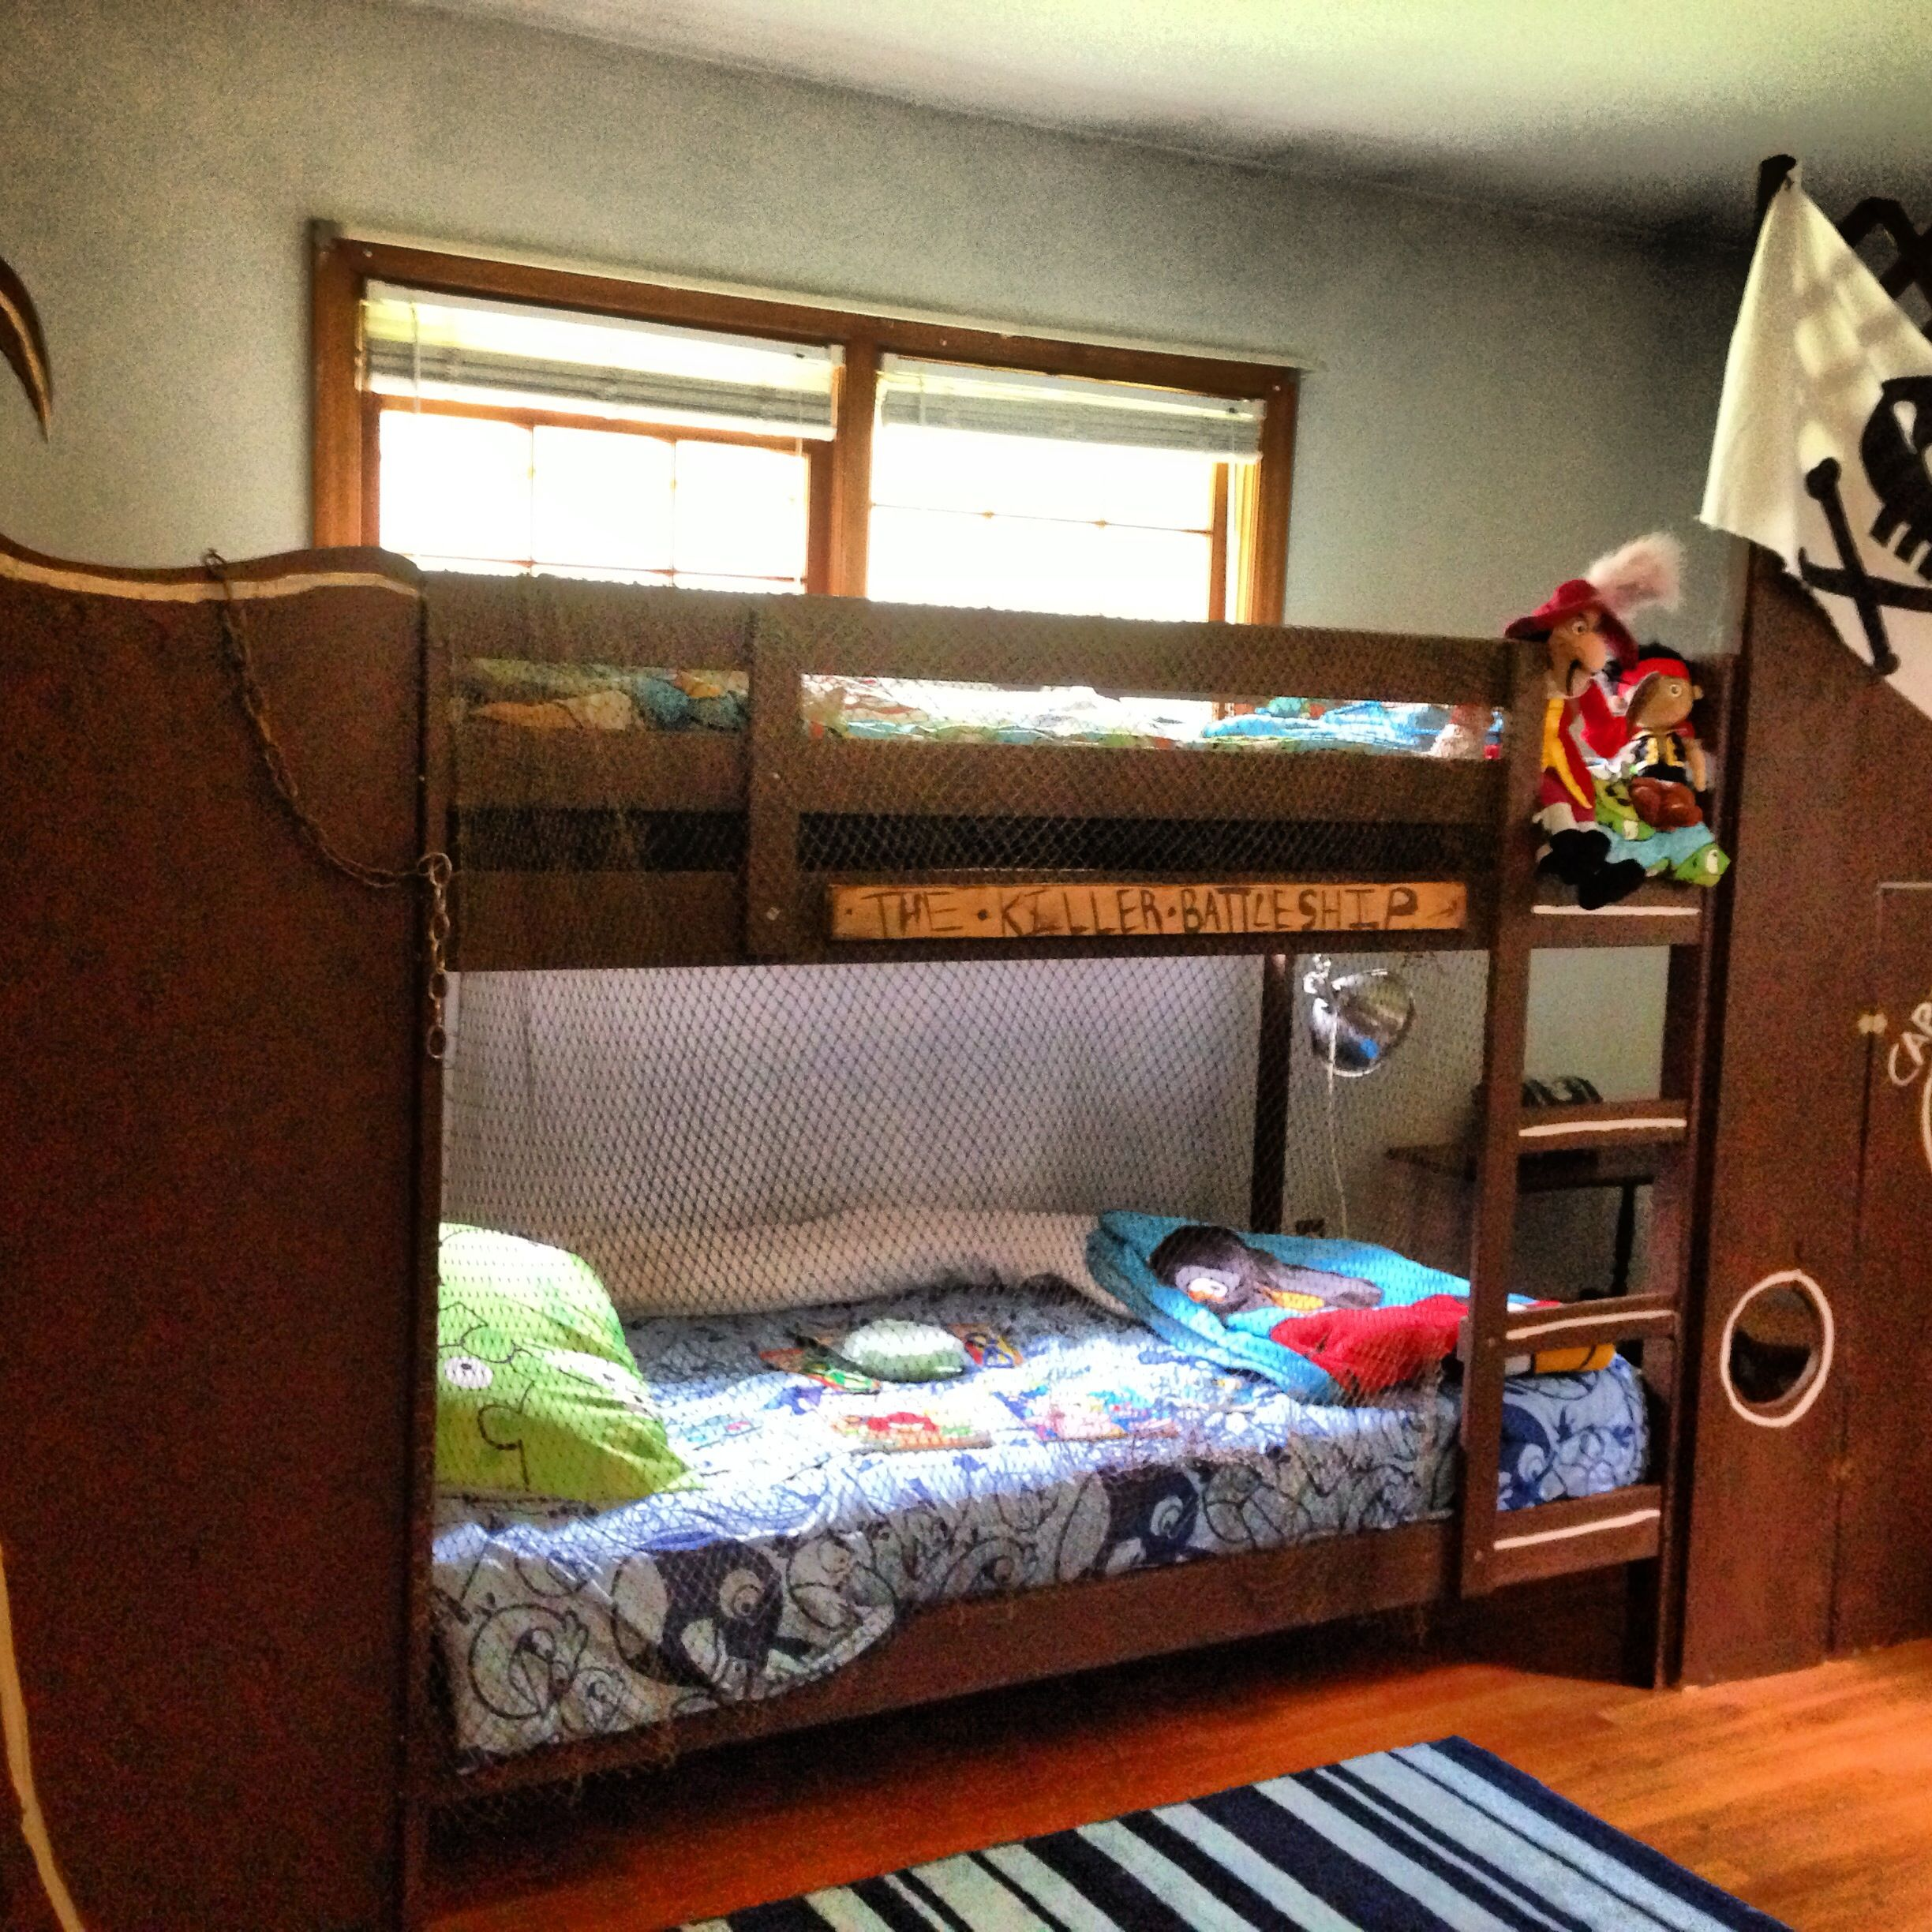 Diy Pirate Ship Bunk Bed For The Kiddos Bunk Beds Bed Kid Beds